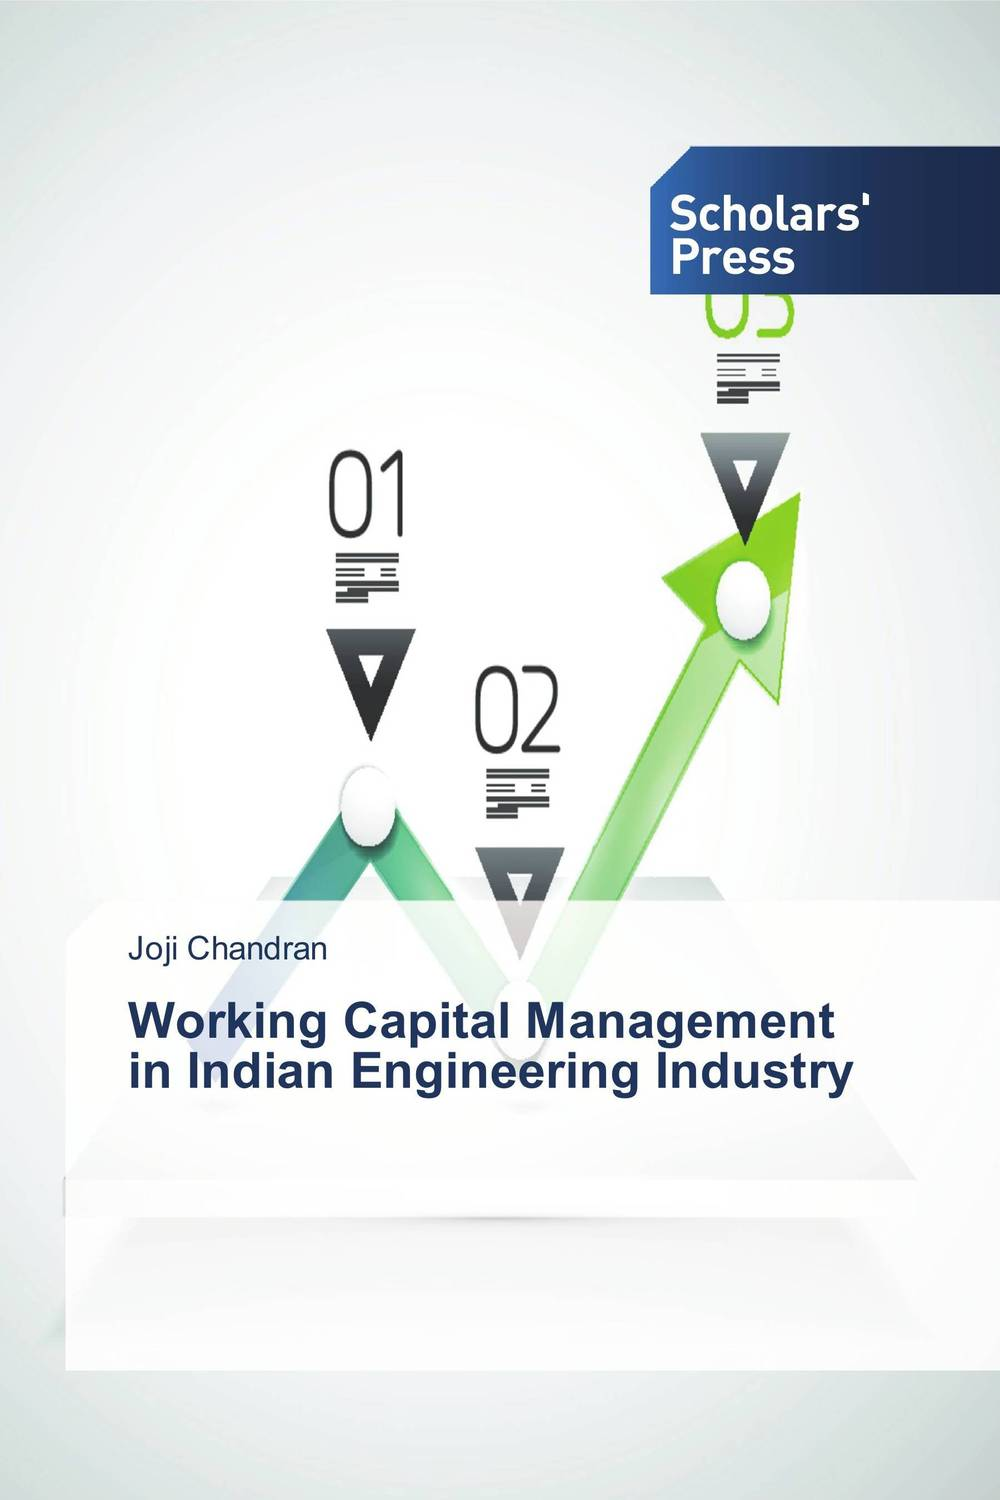 Working Capital Management in Indian Engineering Industry james sagner working capital management applications and case studies